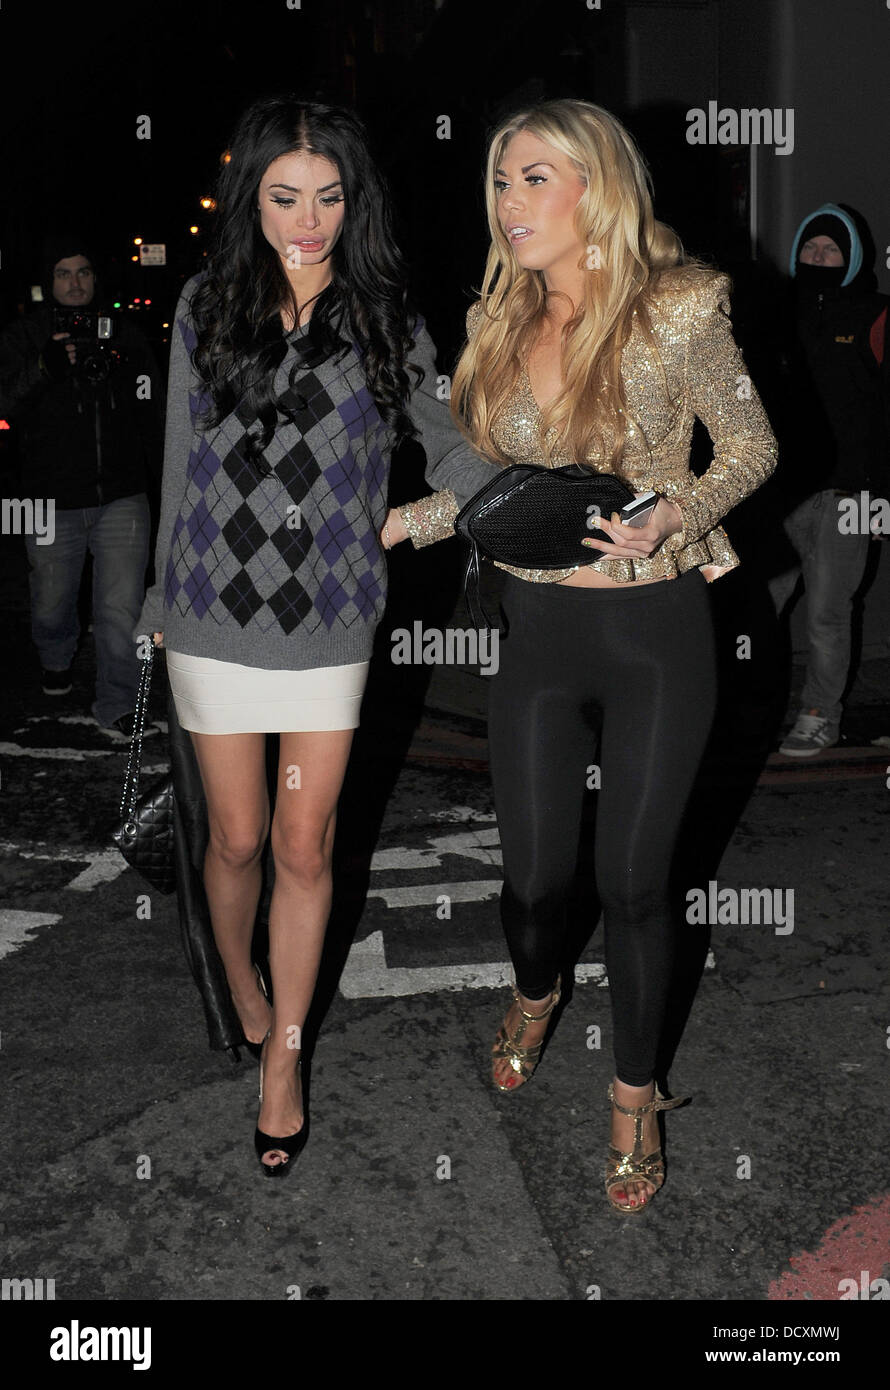 'The Only Way Is Essex' girls Lauren Pope, Chole Simms, and Frankie Essex enjoy a night out at a bar in - Stock Image